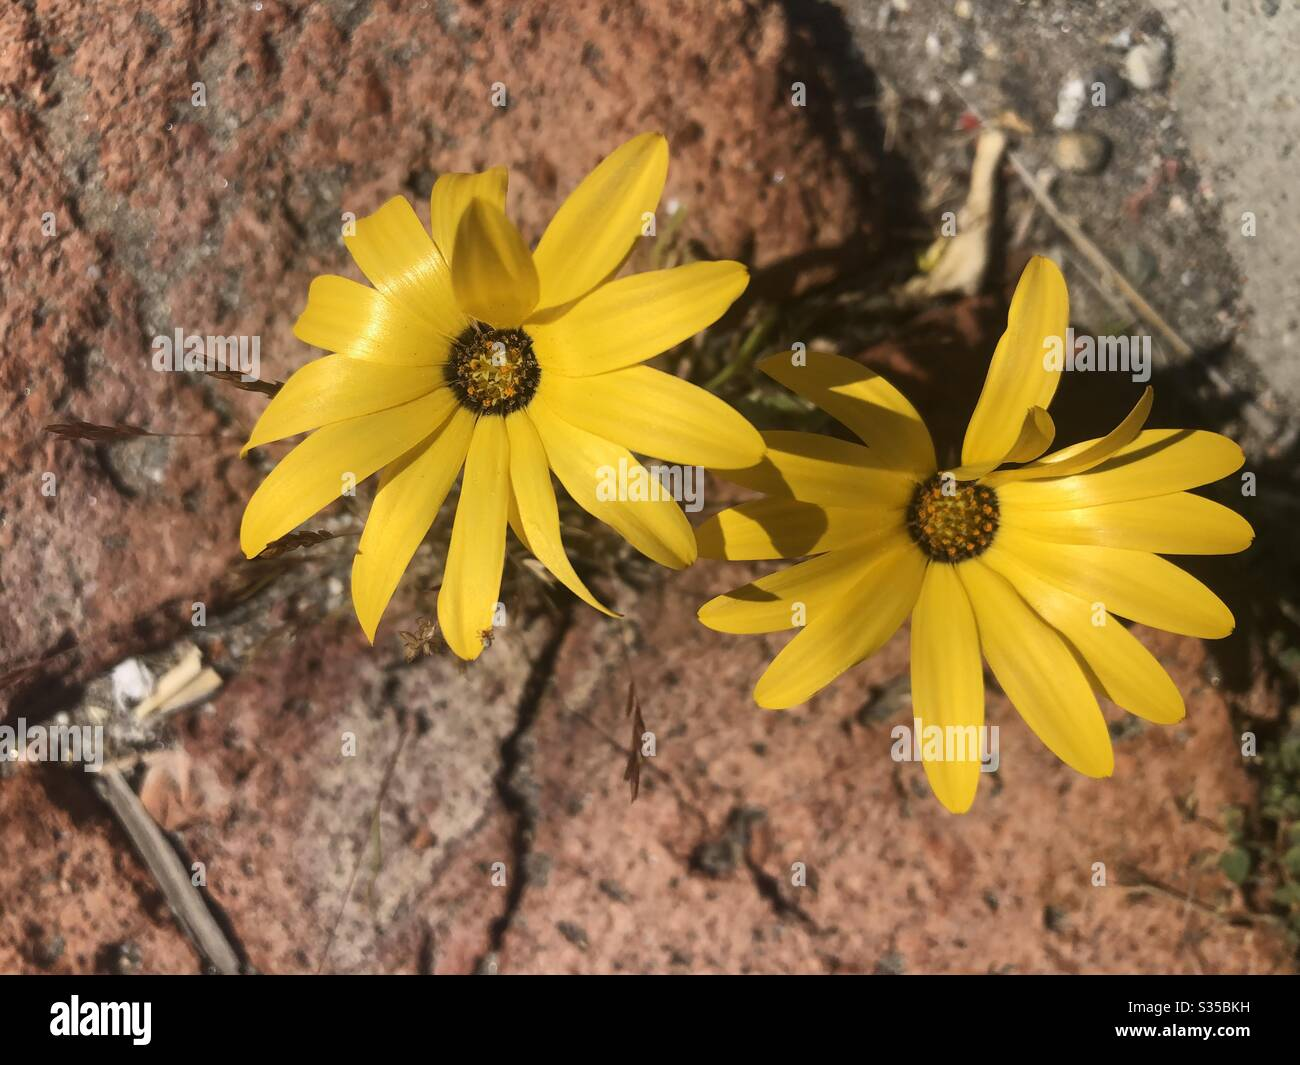 Closeup Two Yellow Flowers Brown Centers Growing Around Bricks Daisy Like Nature Natural Downward Angle Stock Photo Alamy The latest version daisy brown 2 tones color contacts, light color match bring you fresh spring. alamy